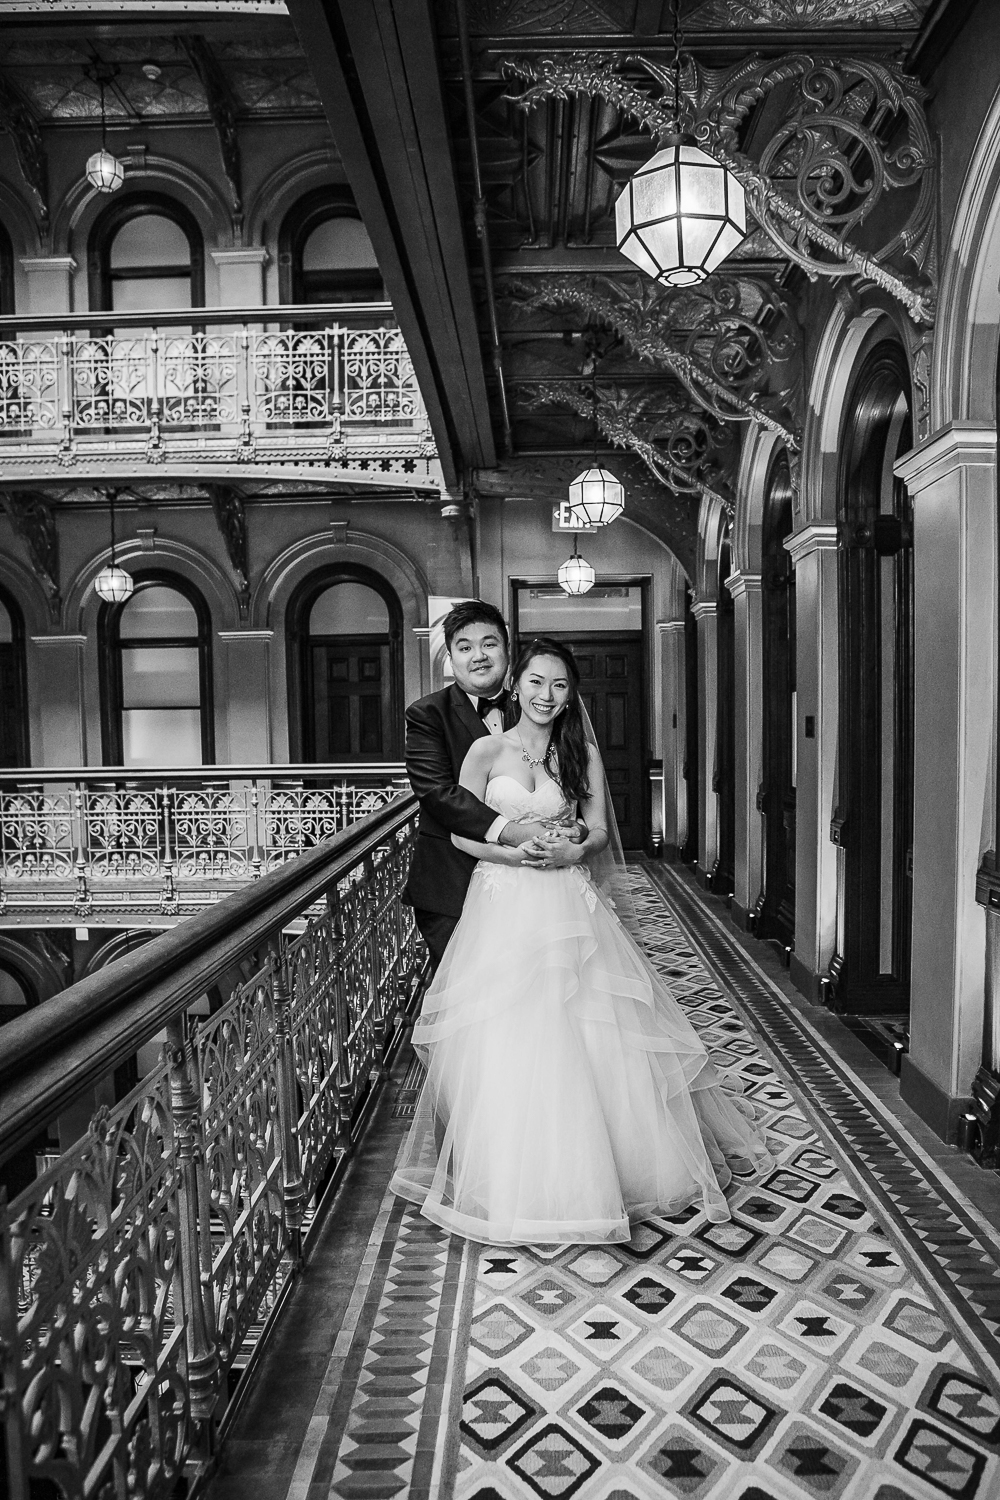 Bride and groom pose for wedding photos at the Beekman Hotel in New York City   Beekman Hotel Wedding Photos   Jason and Susanna's Glam NYC Elopement